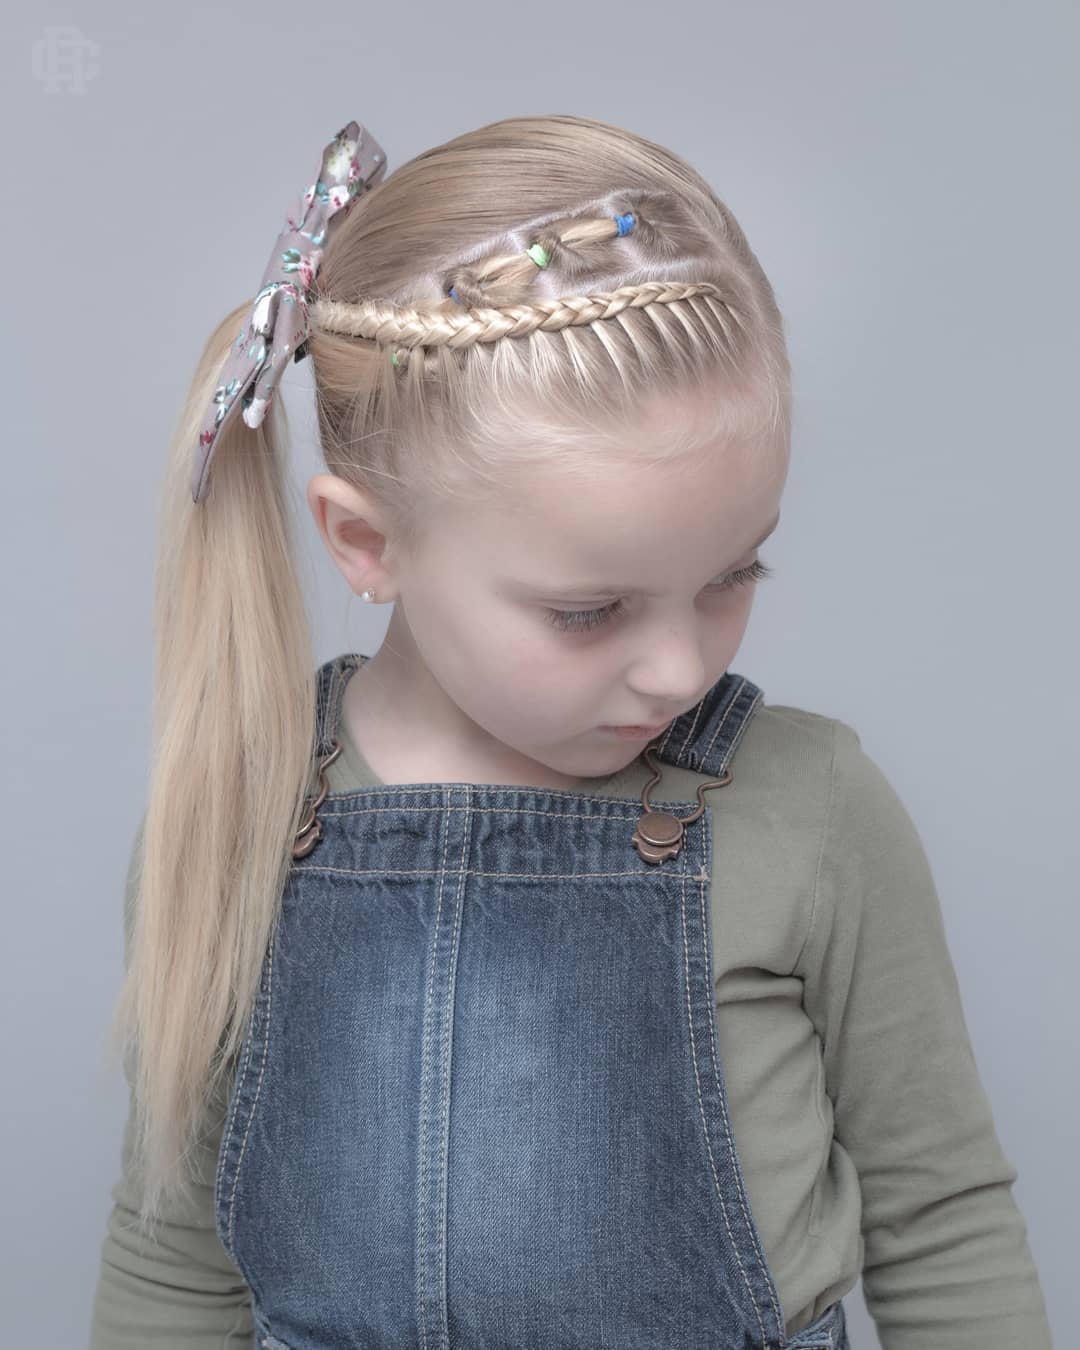 Top Kids Hairstyle Ideas – The Best for Little Girl's Hair